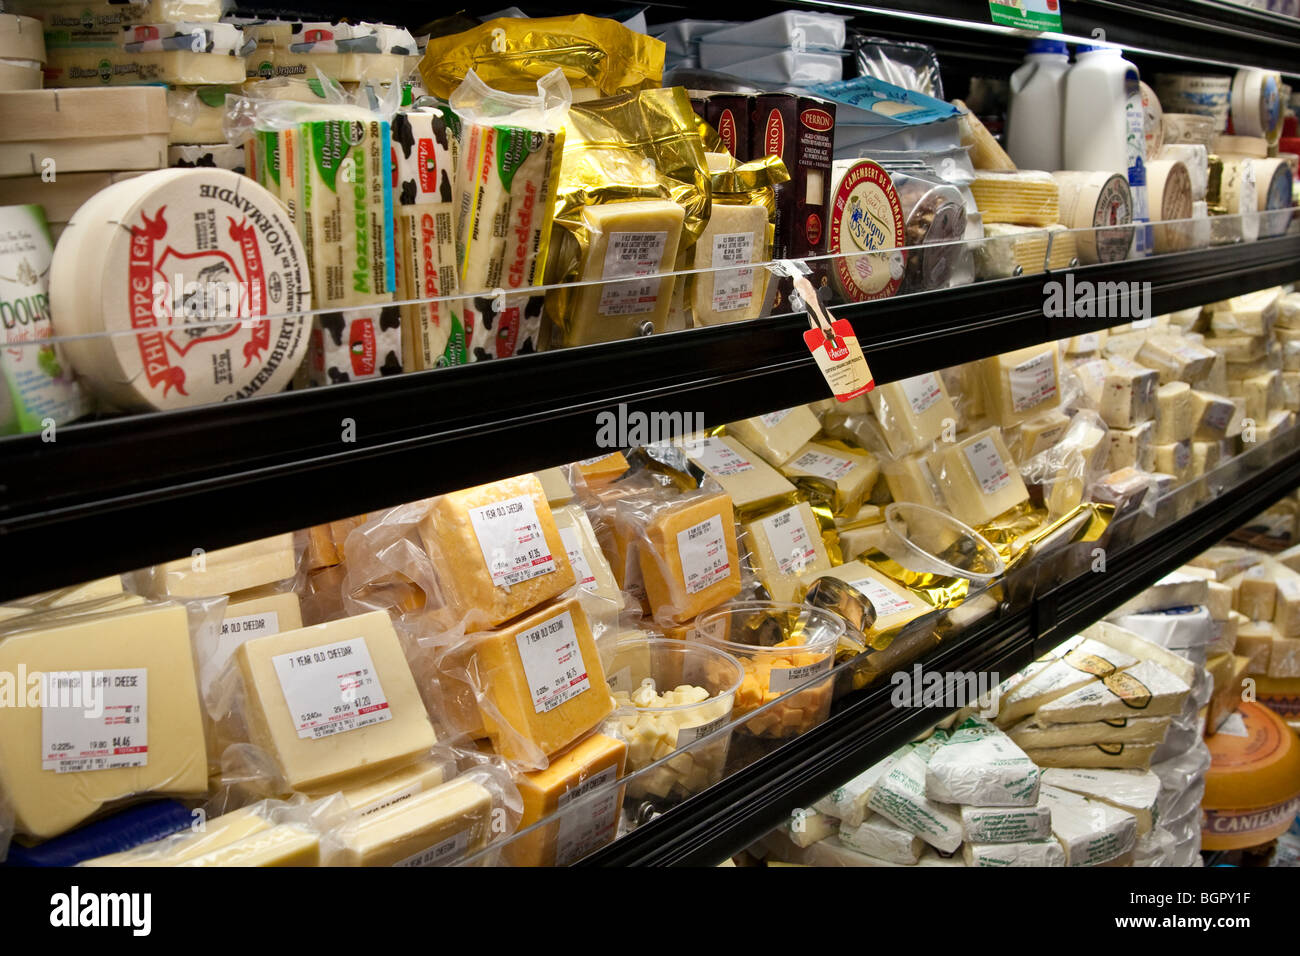 Cheese on display, St. Lawrence Market, Toronto, Canada - Stock Image